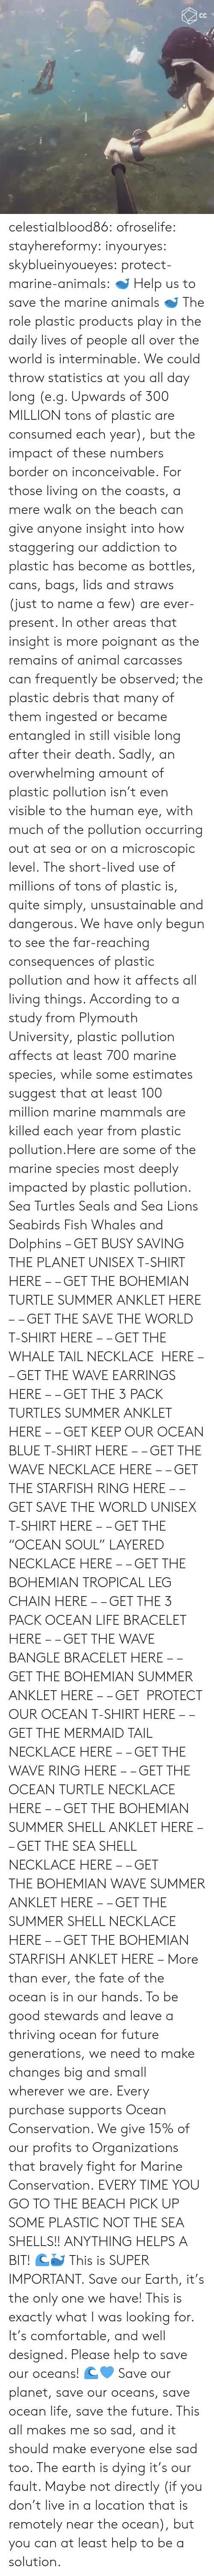 "debris: celestialblood86:  ofroselife: stayhereformy:  inyouryes:  skyblueinyoueyes:  protect-marine-animals:  🐋 Help us to save the marine animals 🐋 The role plastic products play in the daily lives of people all over the world is interminable. We could throw statistics at you all day long (e.g. Upwards of 300 MILLION tons of plastic are consumed each year), but the impact of these numbers border on inconceivable. For those living on the coasts, a mere walk on the beach can give anyone insight into how staggering our addiction to plastic has become as bottles, cans, bags, lids and straws (just to name a few) are ever-present. In other areas that insight is more poignant as the remains of animal carcasses can frequently be observed; the plastic debris that many of them ingested or became entangled in still visible long after their death. Sadly, an overwhelming amount of plastic pollution isn't even visible to the human eye, with much of the pollution occurring out at sea or on a microscopic level. The short-lived use of millions of tons of plastic is, quite simply, unsustainable and dangerous. We have only begun to see the far-reaching consequences of plastic pollution and how it affects all living things. According to a study from Plymouth University, plastic pollution affects at least 700 marine species, while some estimates suggest that at least 100 million marine mammals are killed each year from plastic pollution.Here are some of the marine species most deeply impacted by plastic pollution. Sea Turtles Seals and Sea Lions Seabirds Fish Whales and Dolphins – GET BUSY SAVING THE PLANET UNISEX T-SHIRT HERE – – GET THE BOHEMIAN TURTLE SUMMER ANKLET HERE – – GET THE SAVE THE WORLD T-SHIRT HERE – – GET THE WHALE TAIL NECKLACE  HERE – – GET THE WAVE EARRINGS HERE – – GET THE 3 PACK TURTLES SUMMER ANKLET HERE – – GET KEEP OUR OCEAN BLUE T-SHIRT HERE – – GET THE WAVE NECKLACE HERE – – GET THE STARFISH RING HERE – – GET SAVE THE WORLD UNISEX T-SHIRT HERE – – GET THE ""OCEAN SOUL"" LAYERED NECKLACE HERE – – GET THE BOHEMIAN TROPICAL LEG CHAIN HERE – – GET THE 3 PACK OCEAN LIFE BRACELET HERE – – GET THE WAVE BANGLE BRACELET HERE – – GET THE BOHEMIAN SUMMER ANKLET HERE – – GET  PROTECT OUR OCEAN T-SHIRT HERE – – GET THE MERMAID TAIL NECKLACE HERE – – GET THE WAVE RING HERE – – GET THE OCEAN TURTLE NECKLACE HERE – – GET THE BOHEMIAN SUMMER SHELL ANKLET HERE – – GET THE SEA SHELL NECKLACE HERE – – GET THE BOHEMIAN WAVE SUMMER ANKLET HERE – – GET THE SUMMER SHELL NECKLACE HERE – – GET THE BOHEMIAN STARFISH ANKLET HERE – More than ever, the fate of the ocean is in our hands. To be good stewards and leave a thriving ocean for future generations, we need to make changes big and small wherever we are. Every purchase supports Ocean Conservation. We give 15% of our profits to Organizations that bravely fight for Marine Conservation.  EVERY TIME YOU GO TO THE BEACH PICK UP SOME PLASTIC NOT THE SEA SHELLS!! ANYTHING HELPS A BIT! 🌊🐳  This is SUPER IMPORTANT.  Save our Earth, it's the only one we have!  This is exactly what I was looking for. It's comfortable, and well designed. Please help to save our oceans! 🌊💙  Save our planet, save our oceans, save ocean life, save the future. This all makes me so sad, and it should make everyone else sad too. The earth is dying it's our fault. Maybe not directly (if you don't live in a location that is remotely near the ocean), but you can at least help to be a solution."